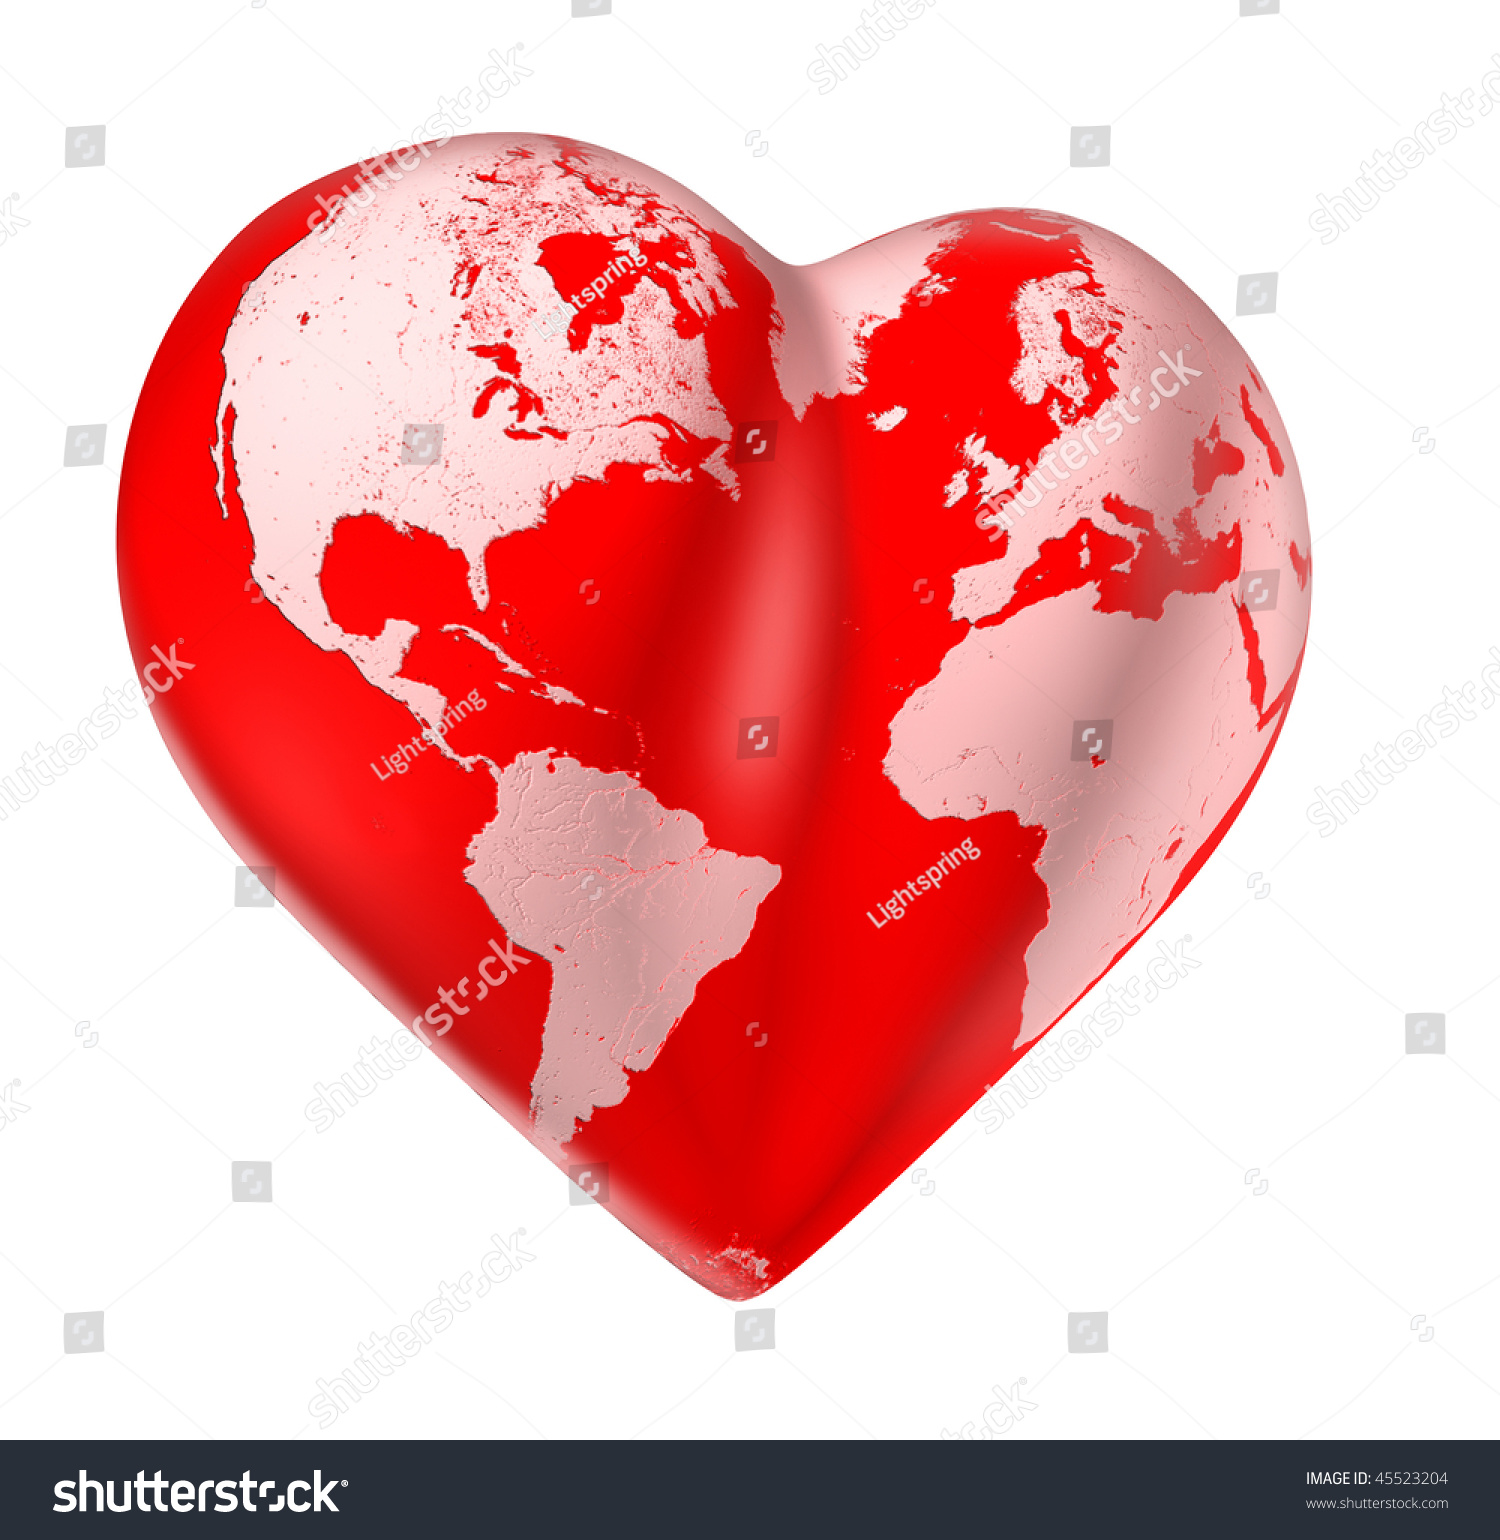 Heart world map of love valentine planet clipping path for World love images